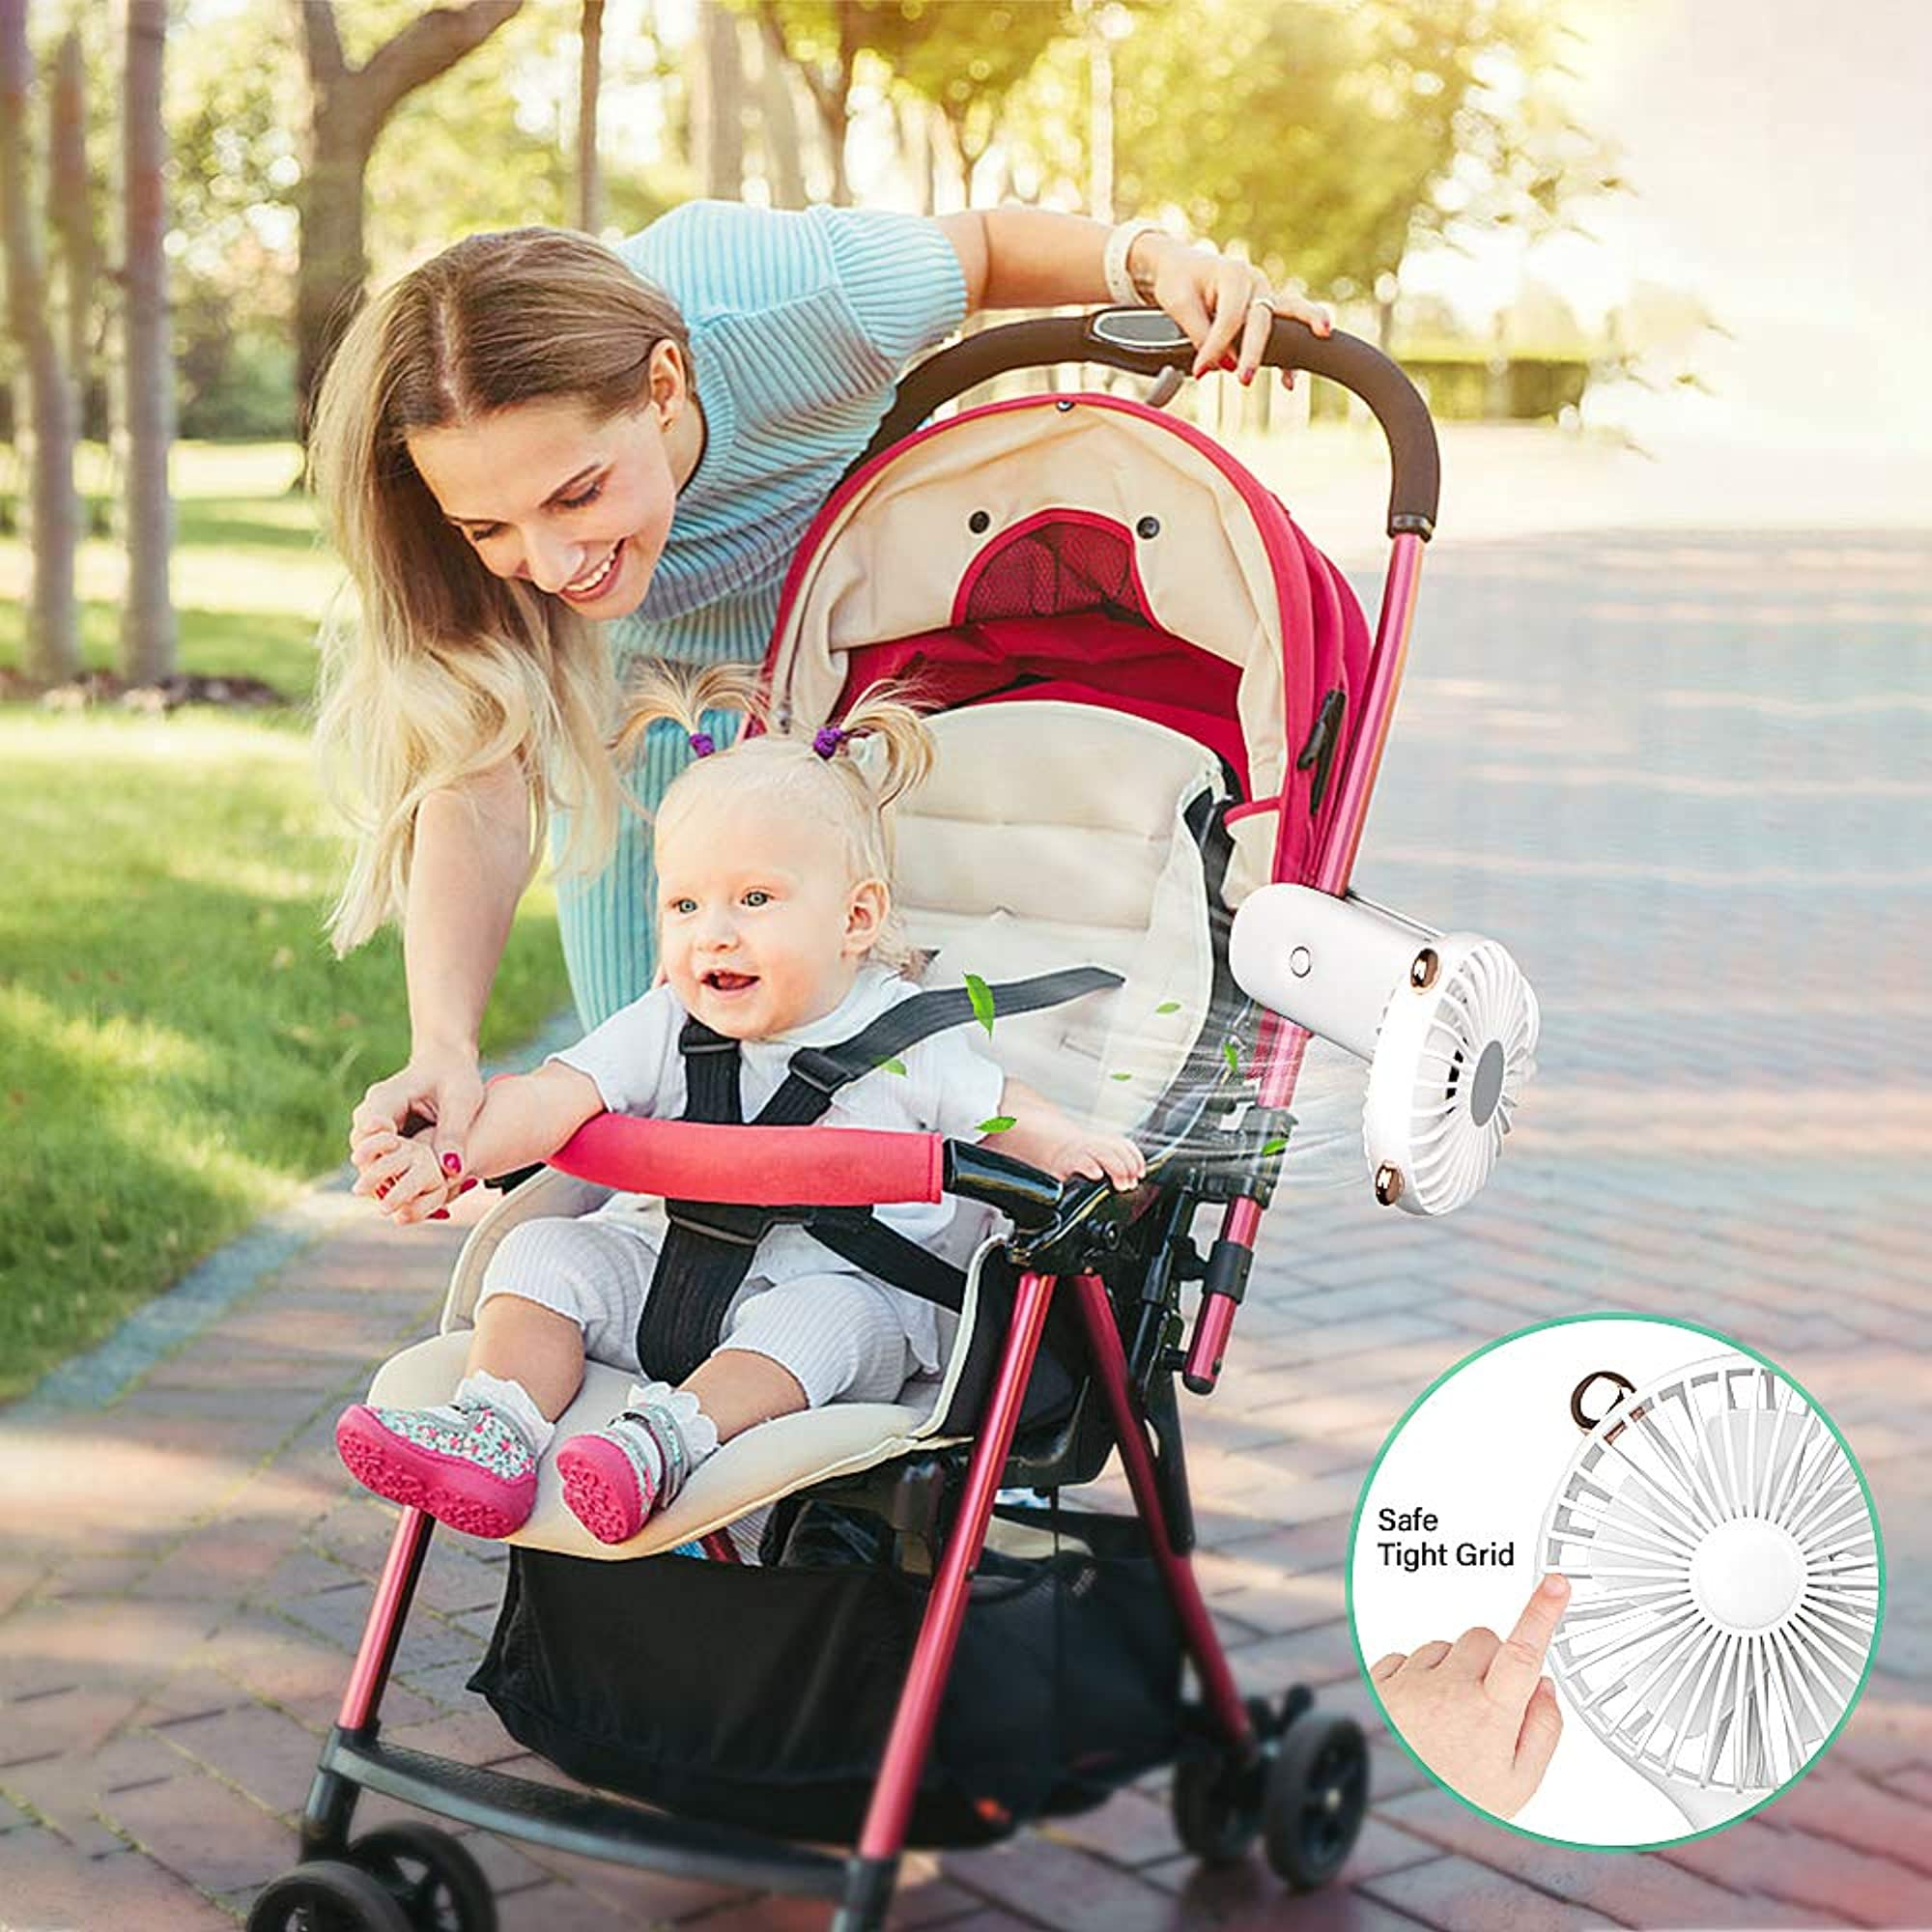 Usb Rechargeable Portable Clip-On Stroller Fan